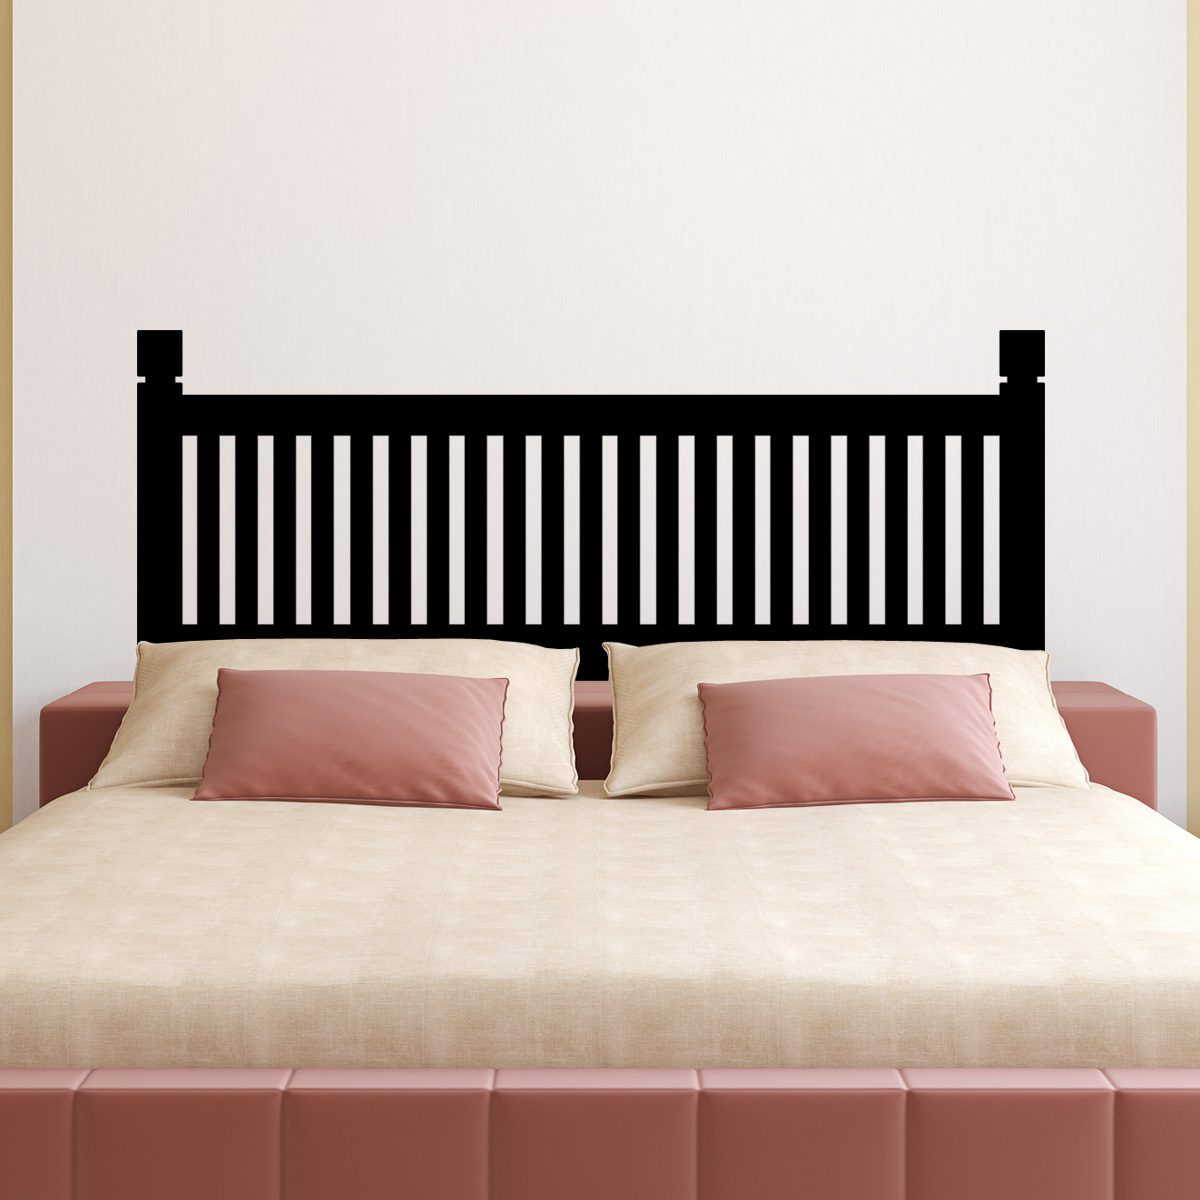 stickers muraux t tes de lit sticker mural t te de lit en bois simple ambiance. Black Bedroom Furniture Sets. Home Design Ideas